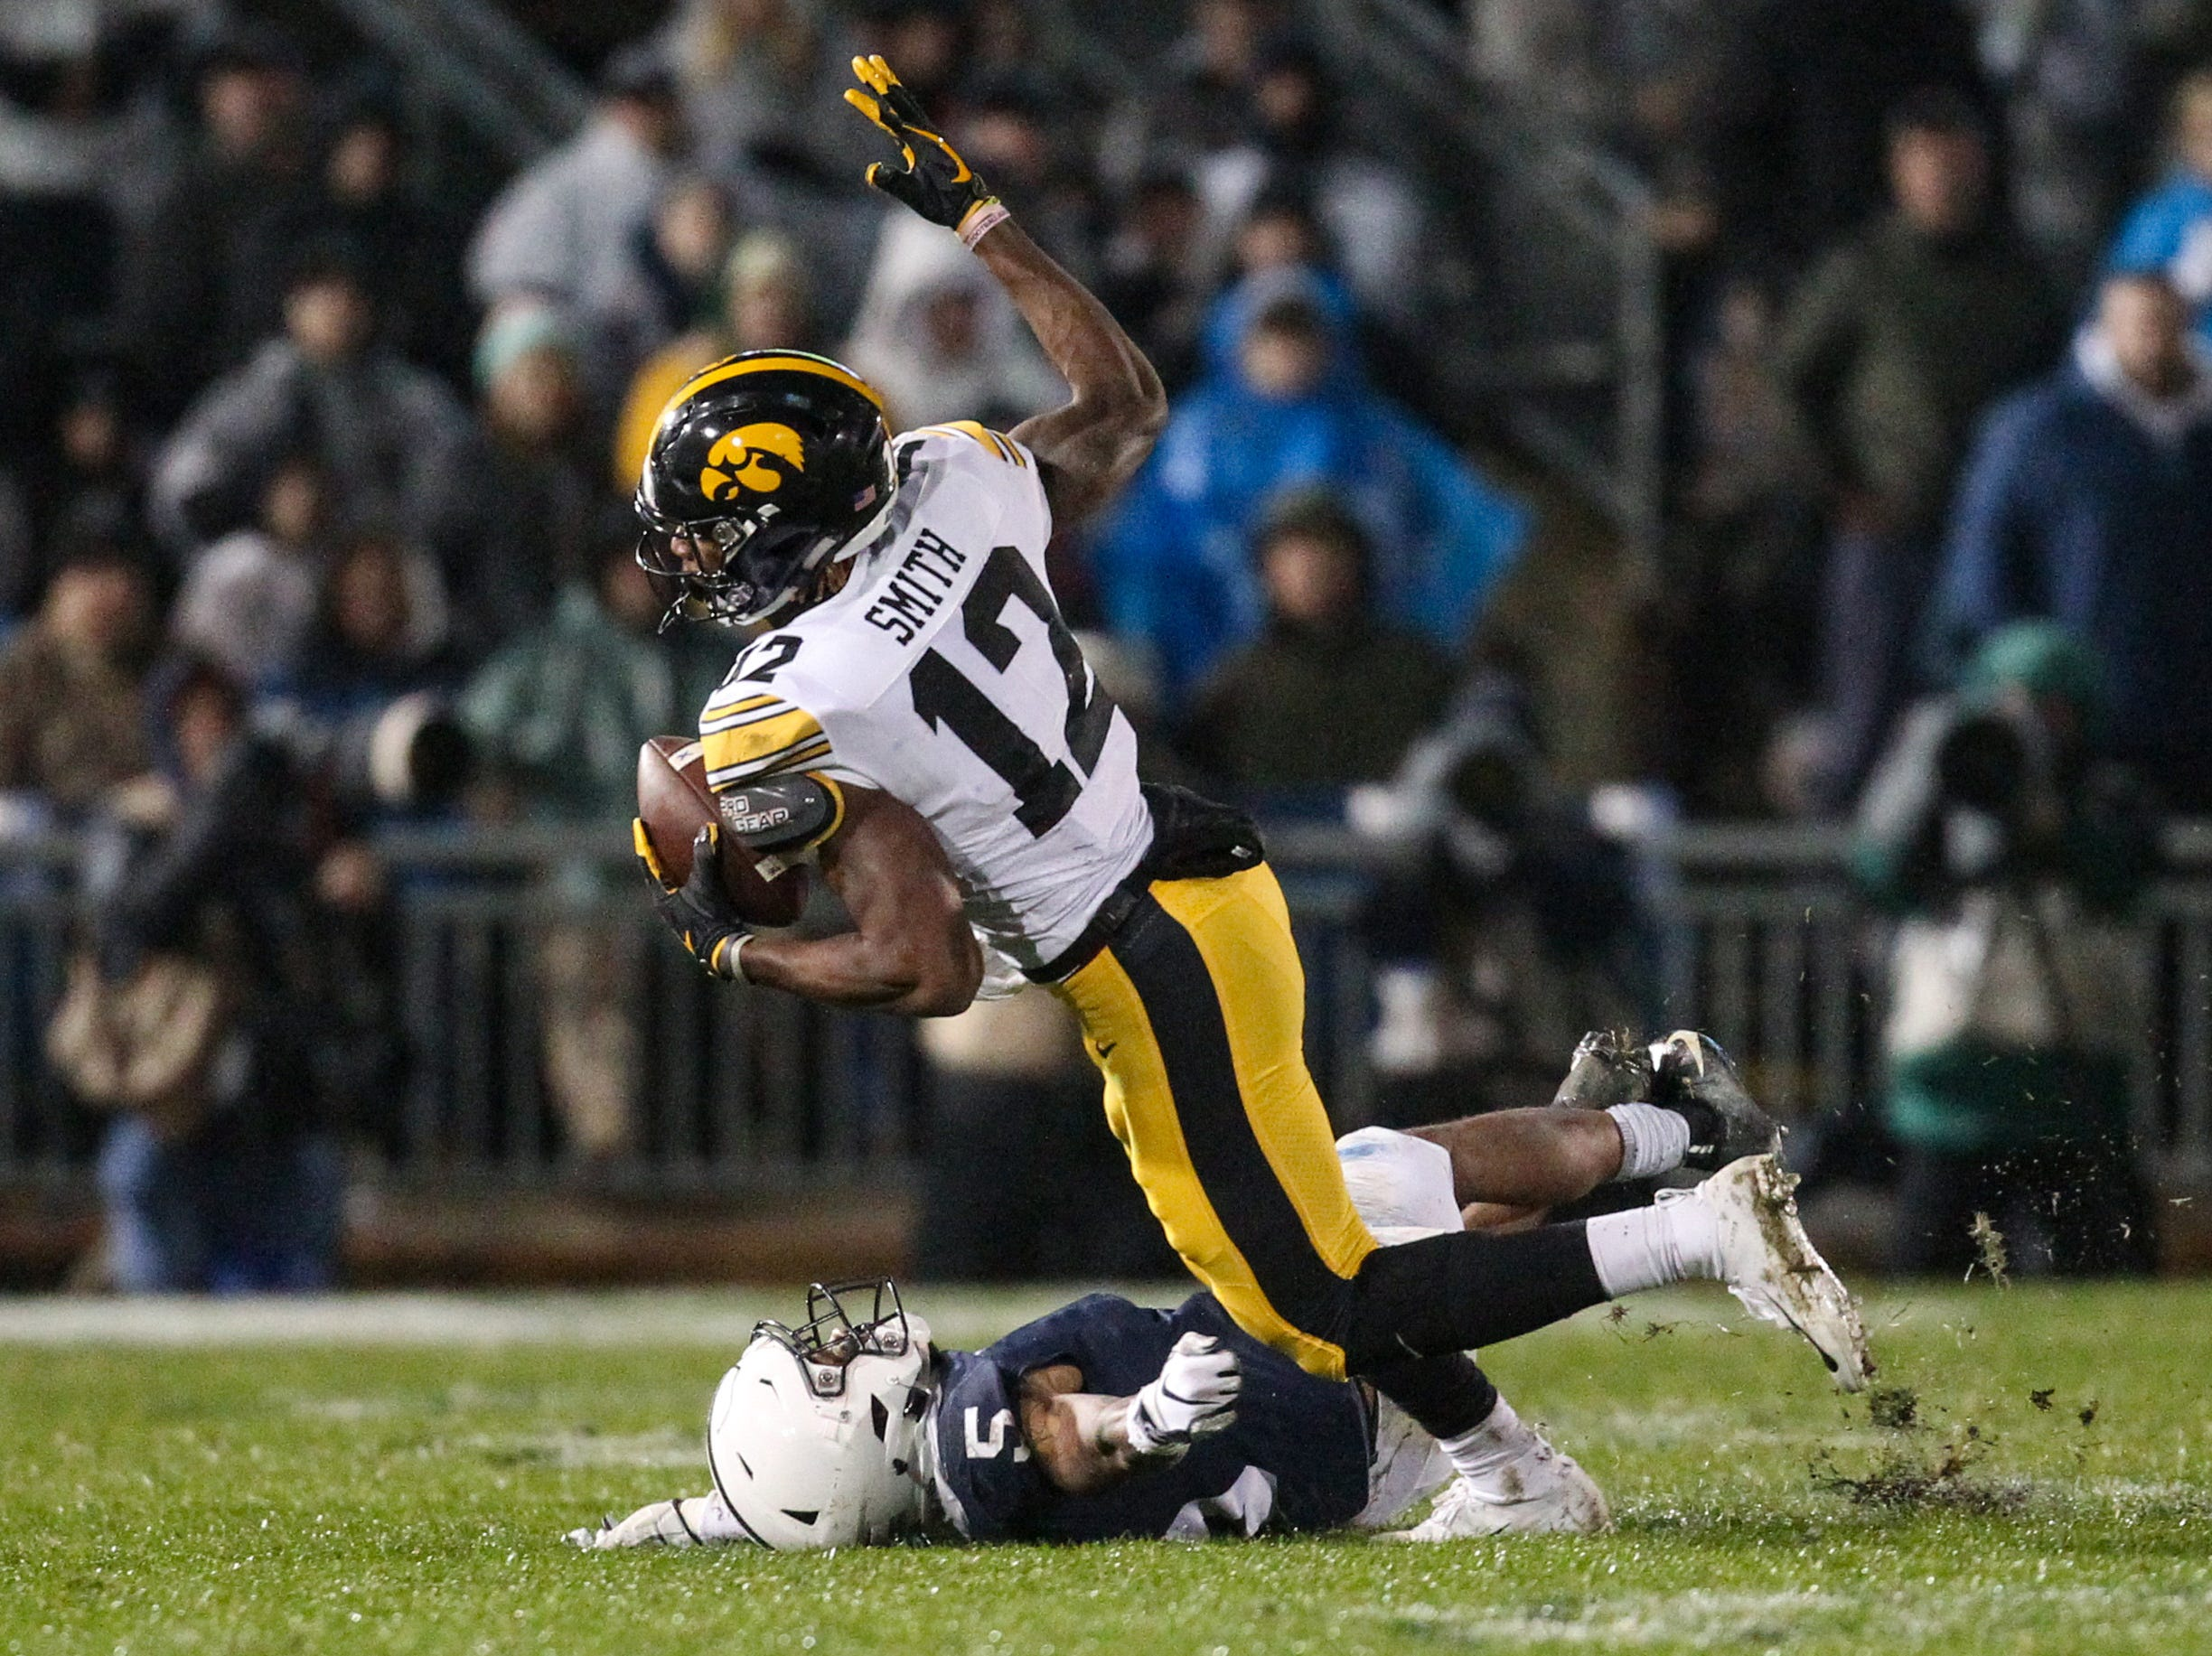 Oct 27, 2018; University Park, PA, USA; Iowa Hawkeyes wide receiver Brandon Smith (12) runs with the ball during the fourth quarter against the Penn State Nittany Lions at Beaver Stadium. Penn State defeated Iowa 30-24. Mandatory Credit: Matthew O'Haren-USA TODAY Sports